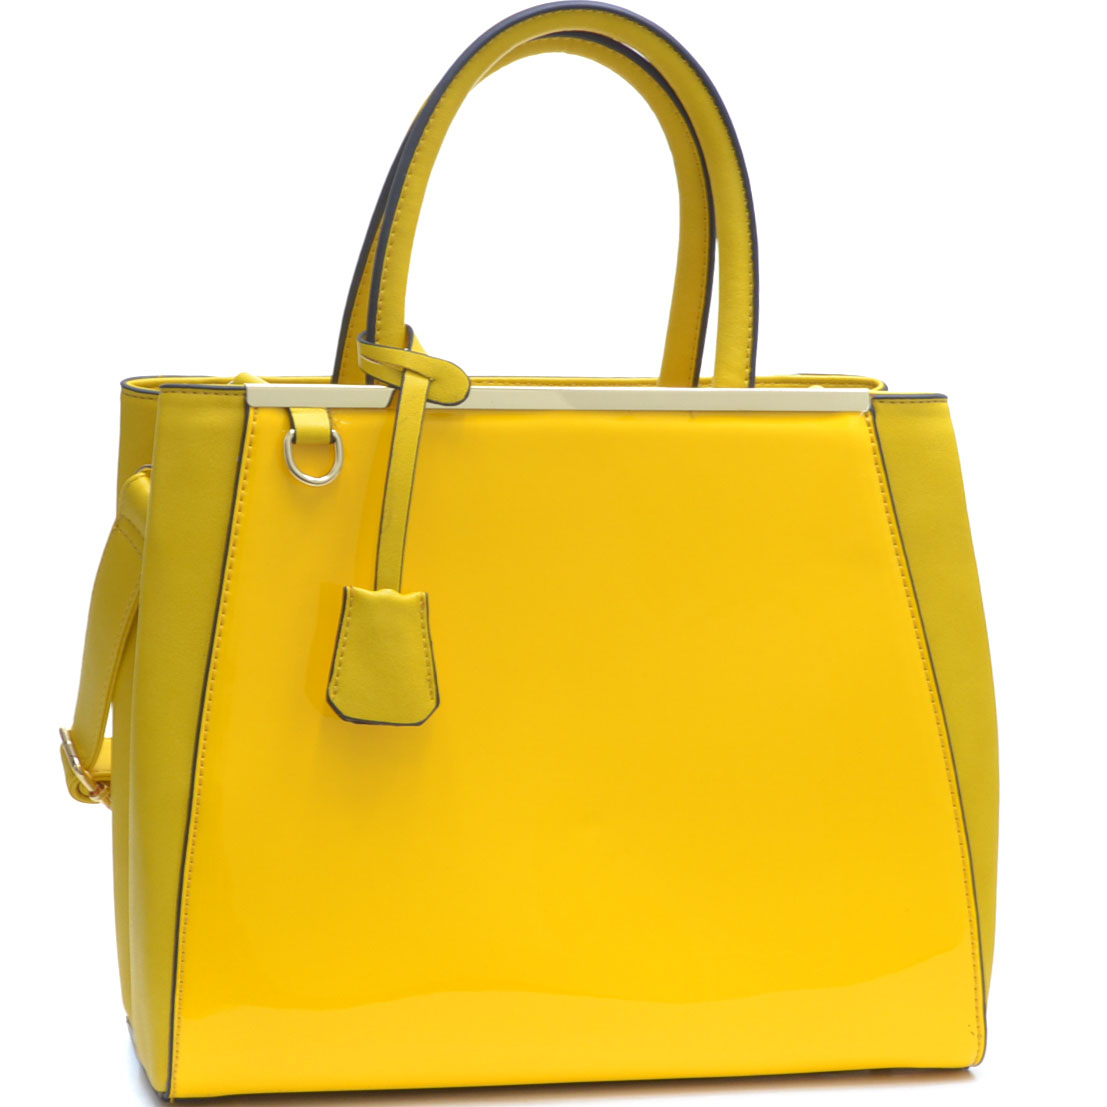 Structured Patent Leather Gold-Tone Satchel with Shoulder Strap